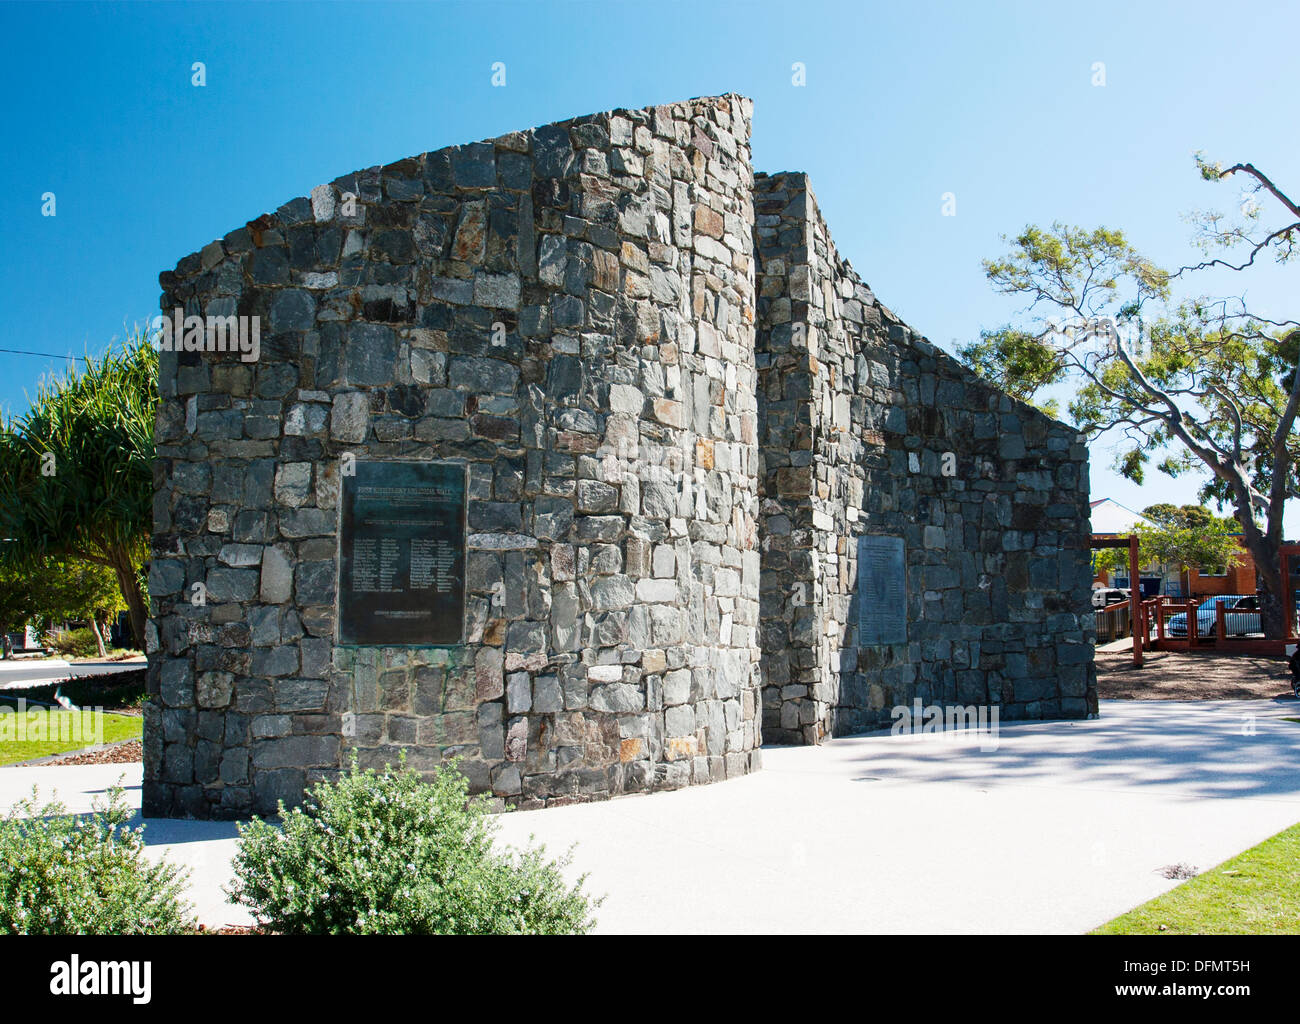 The site of the first convict settlement at Redcliffe Bay, Queensland, Australia. - Stock Image